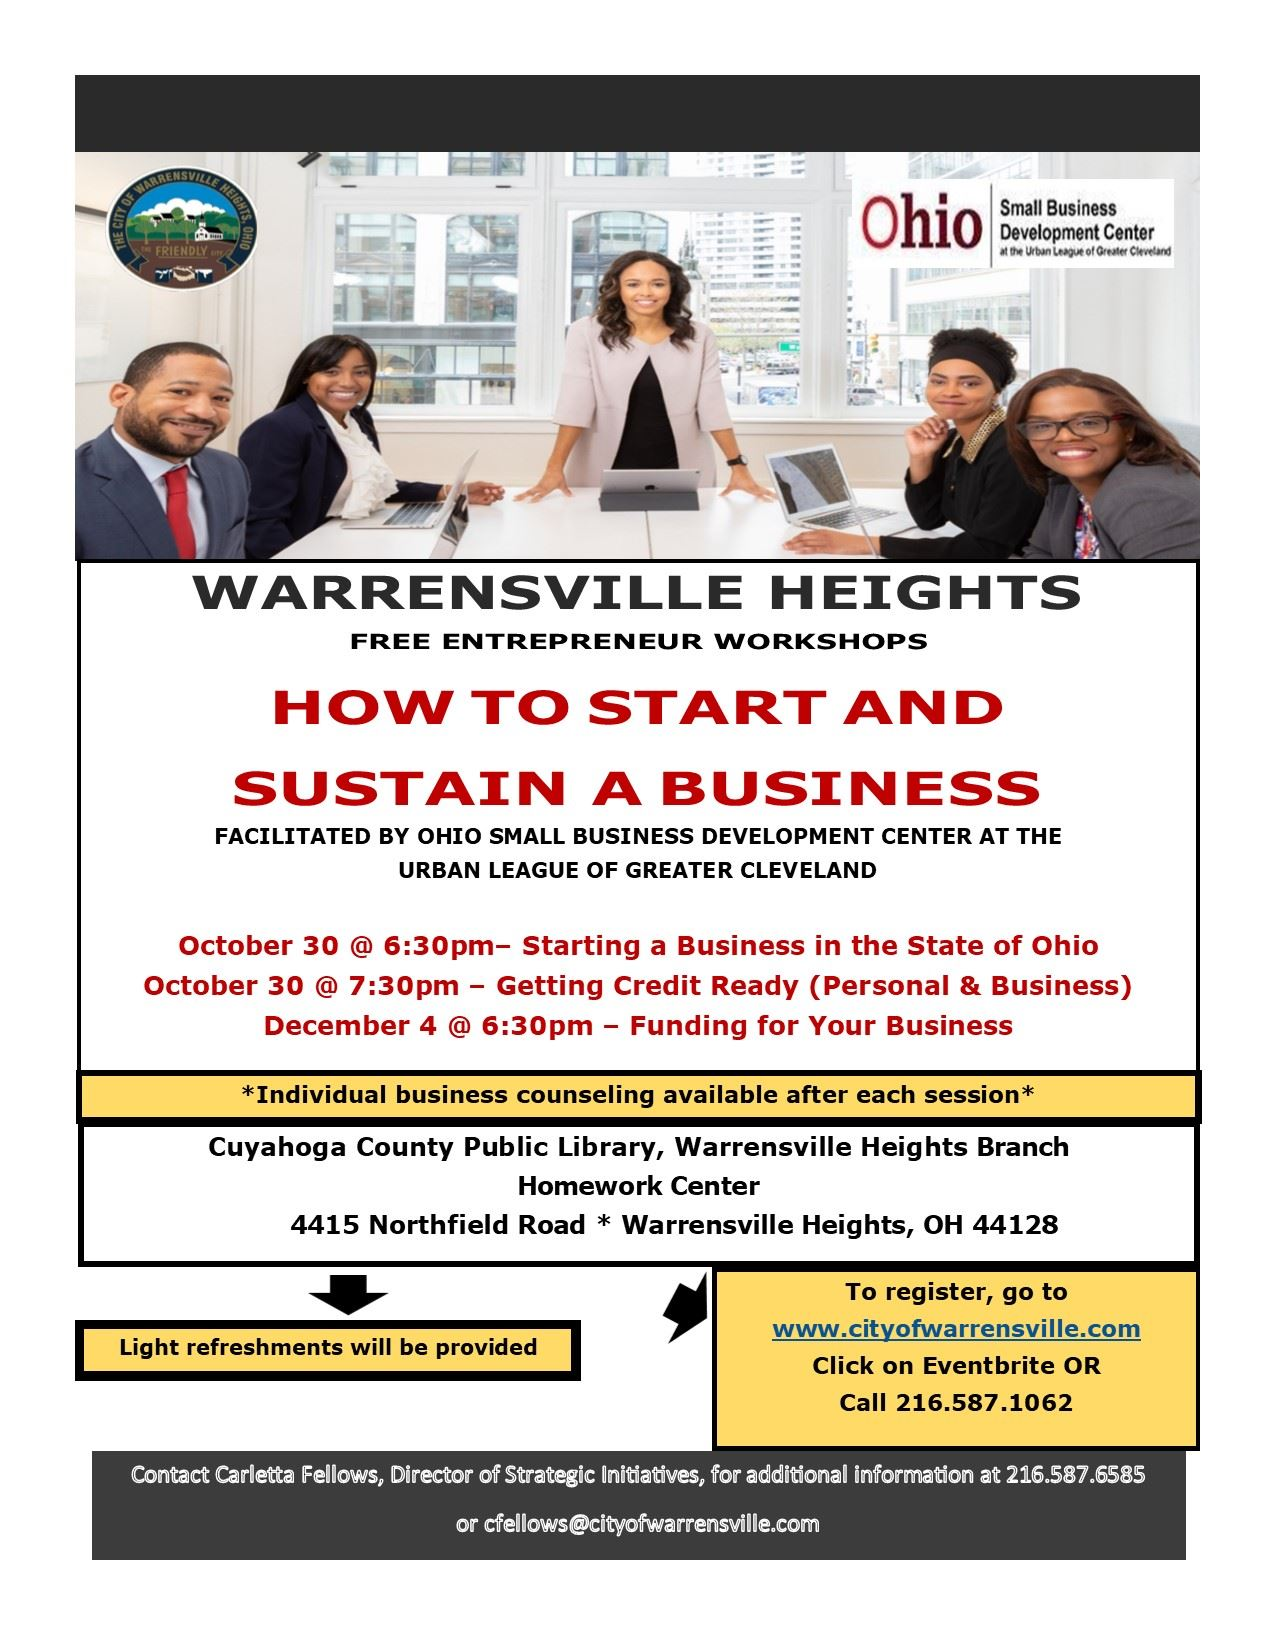 WH Entrepreneurial Workshop Flyer - Final 2